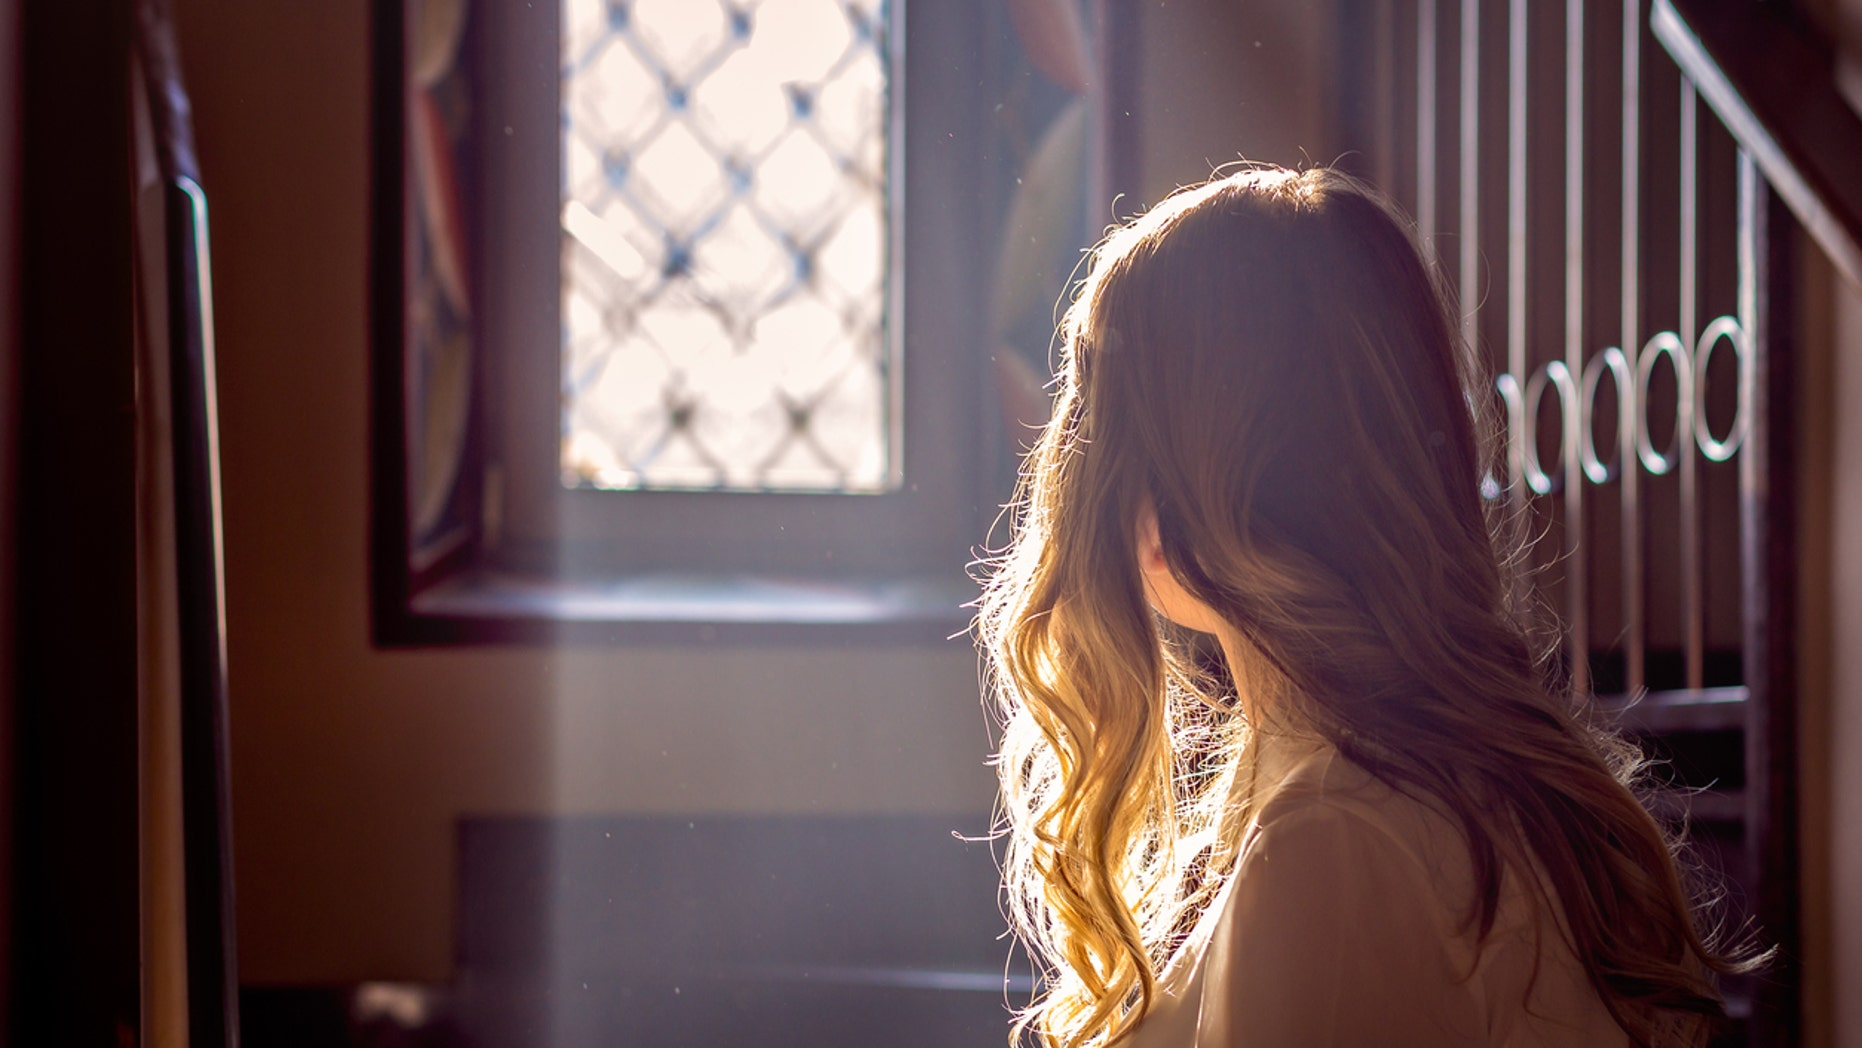 child looking out the window of the church while the light falls on her